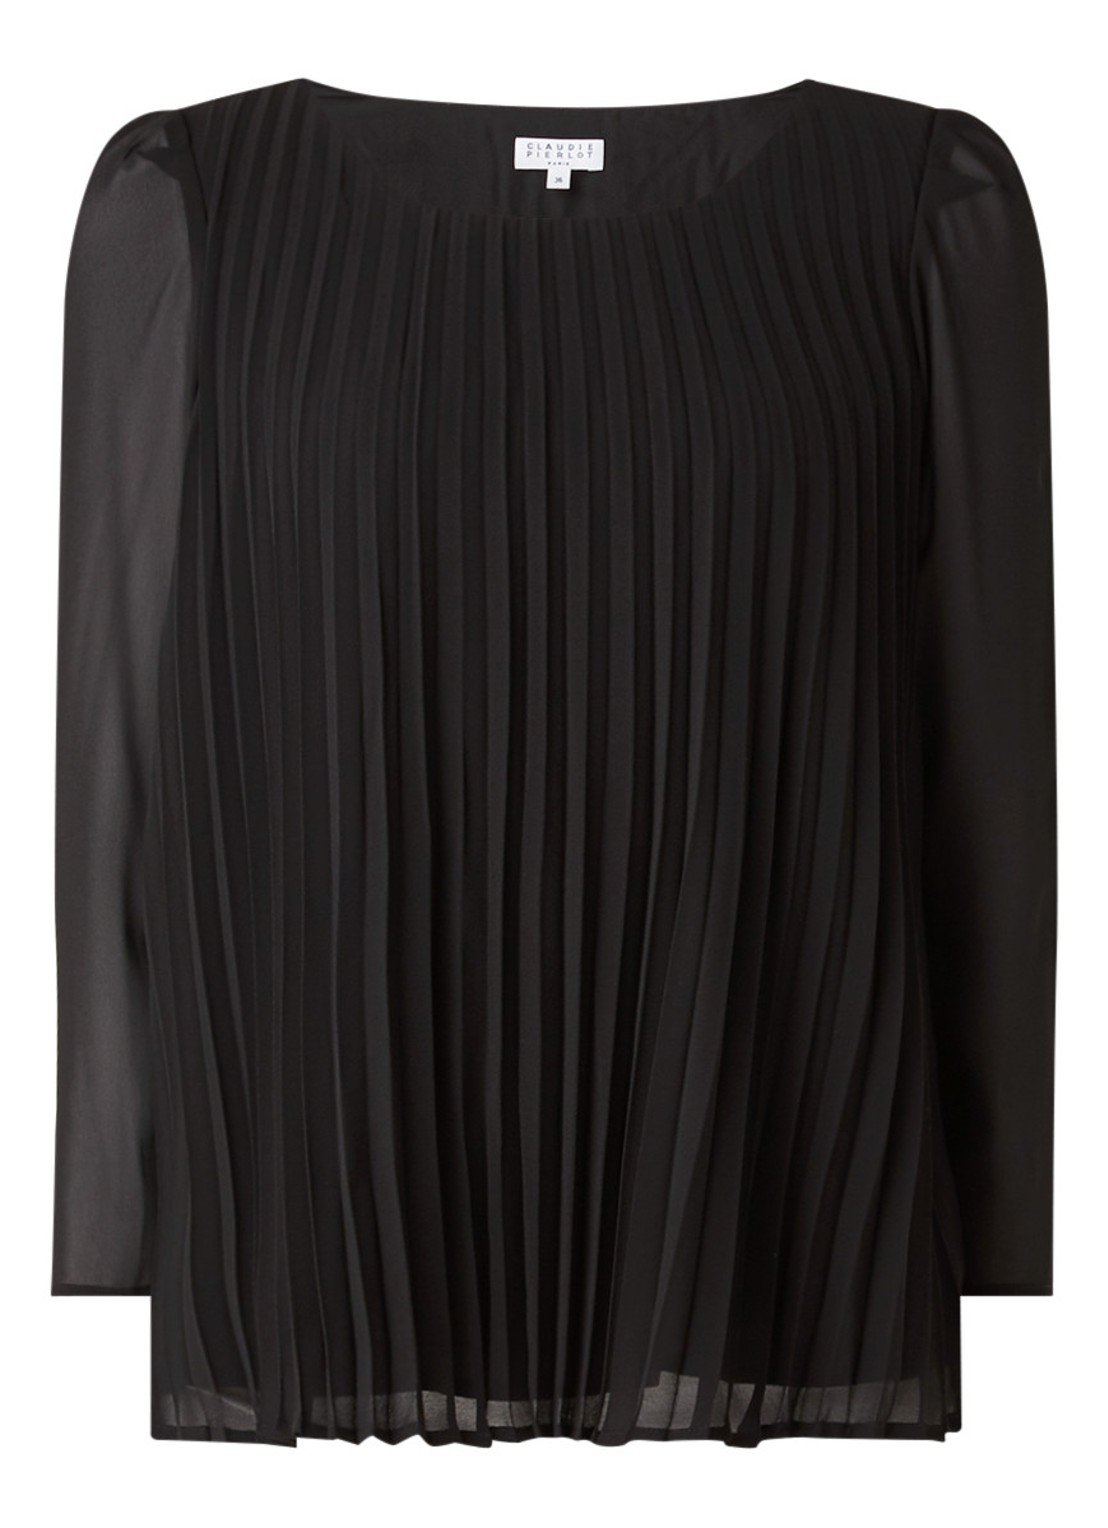 Claudie Pierlot Bancplisee tunic with three-quarter sleeves and pleated